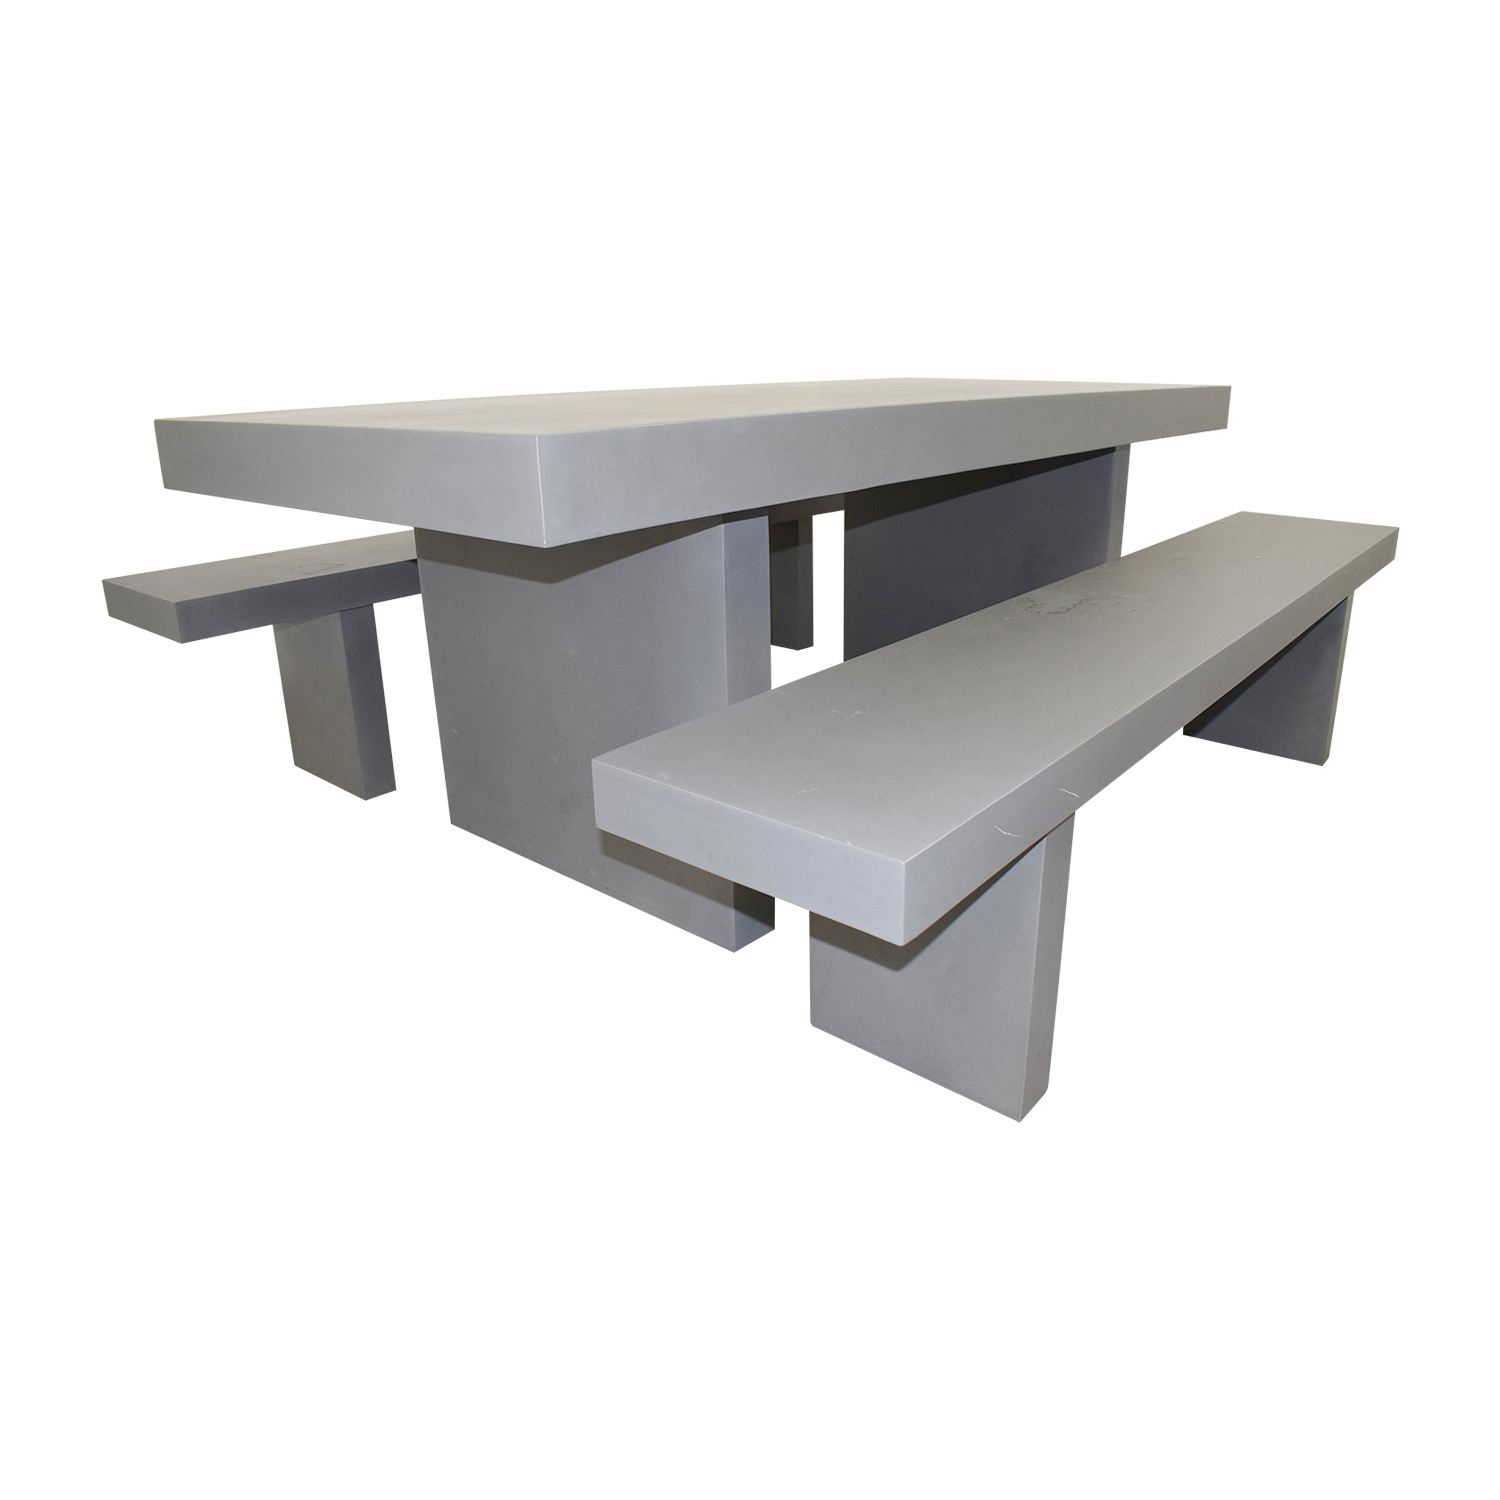 West Elm West Elm Quarry Gray Rectangle Dining Table and Benches Tables